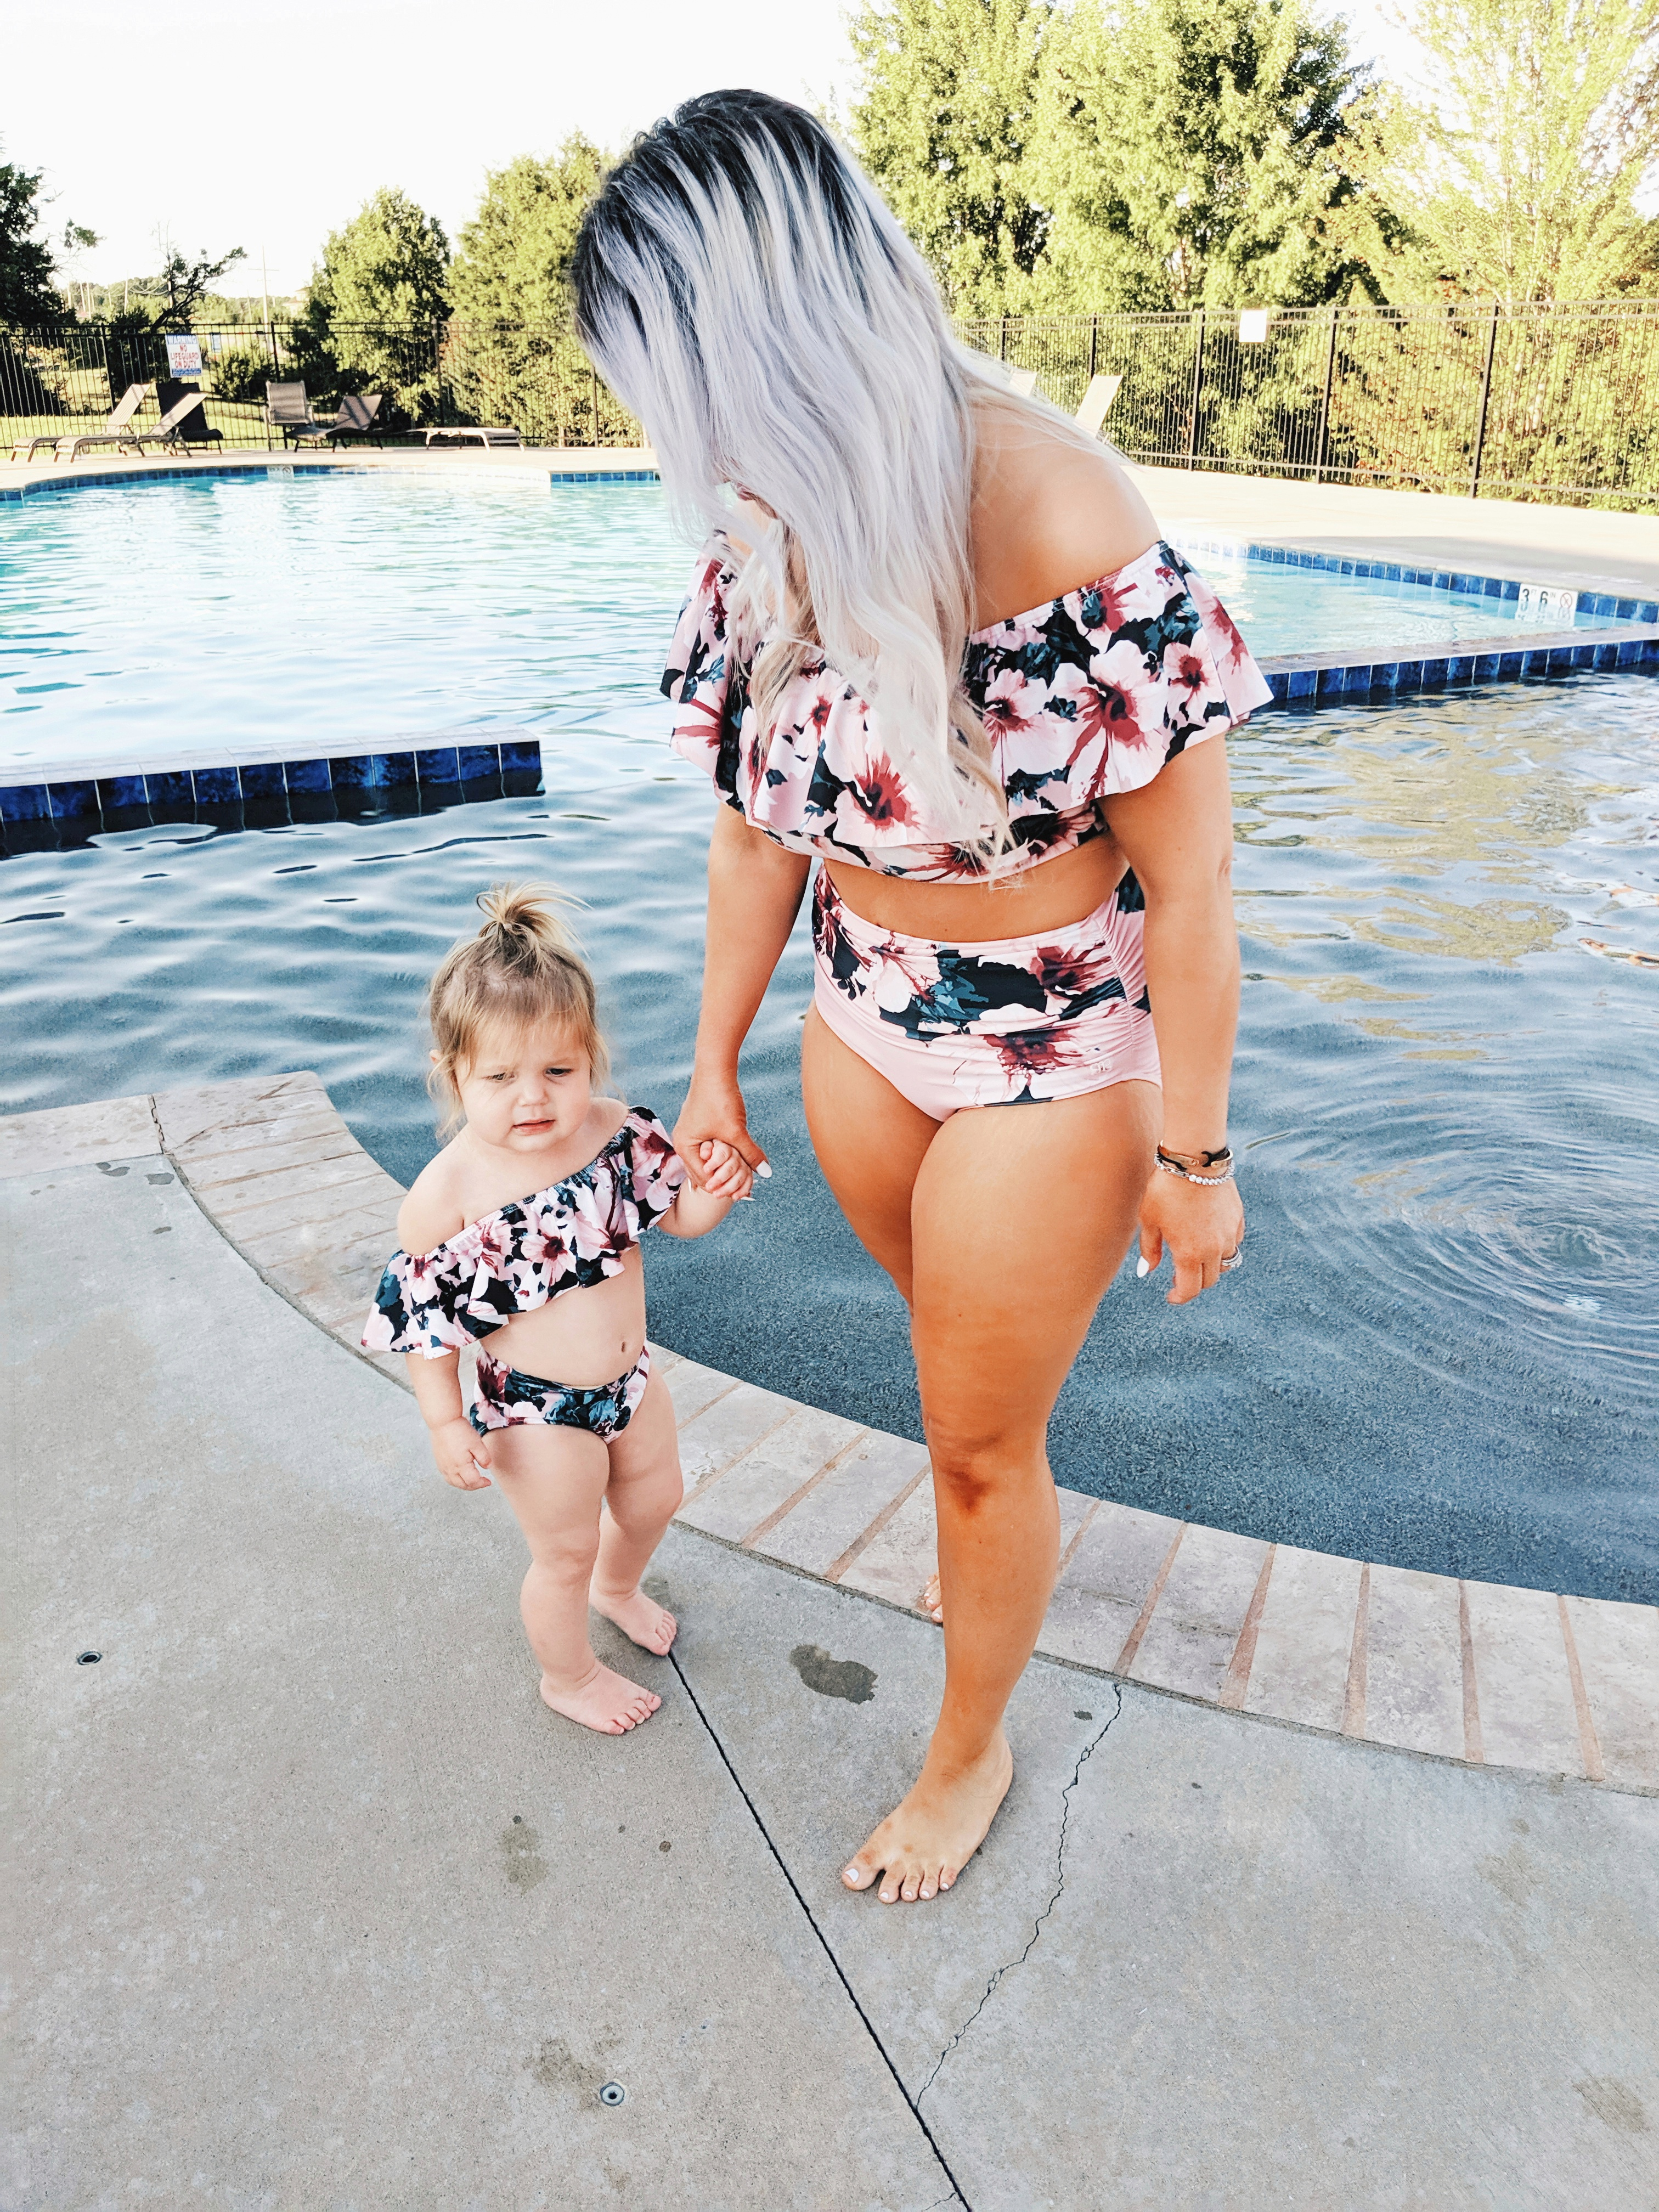 Loved this mama's honest Albion Fit swimsuit reviews! If you're debating if Albion Fit swimsuits are worth it, read this review of cute mommy and me swimsuits from Albion Fit! #mommyandme #twinning #girlmom